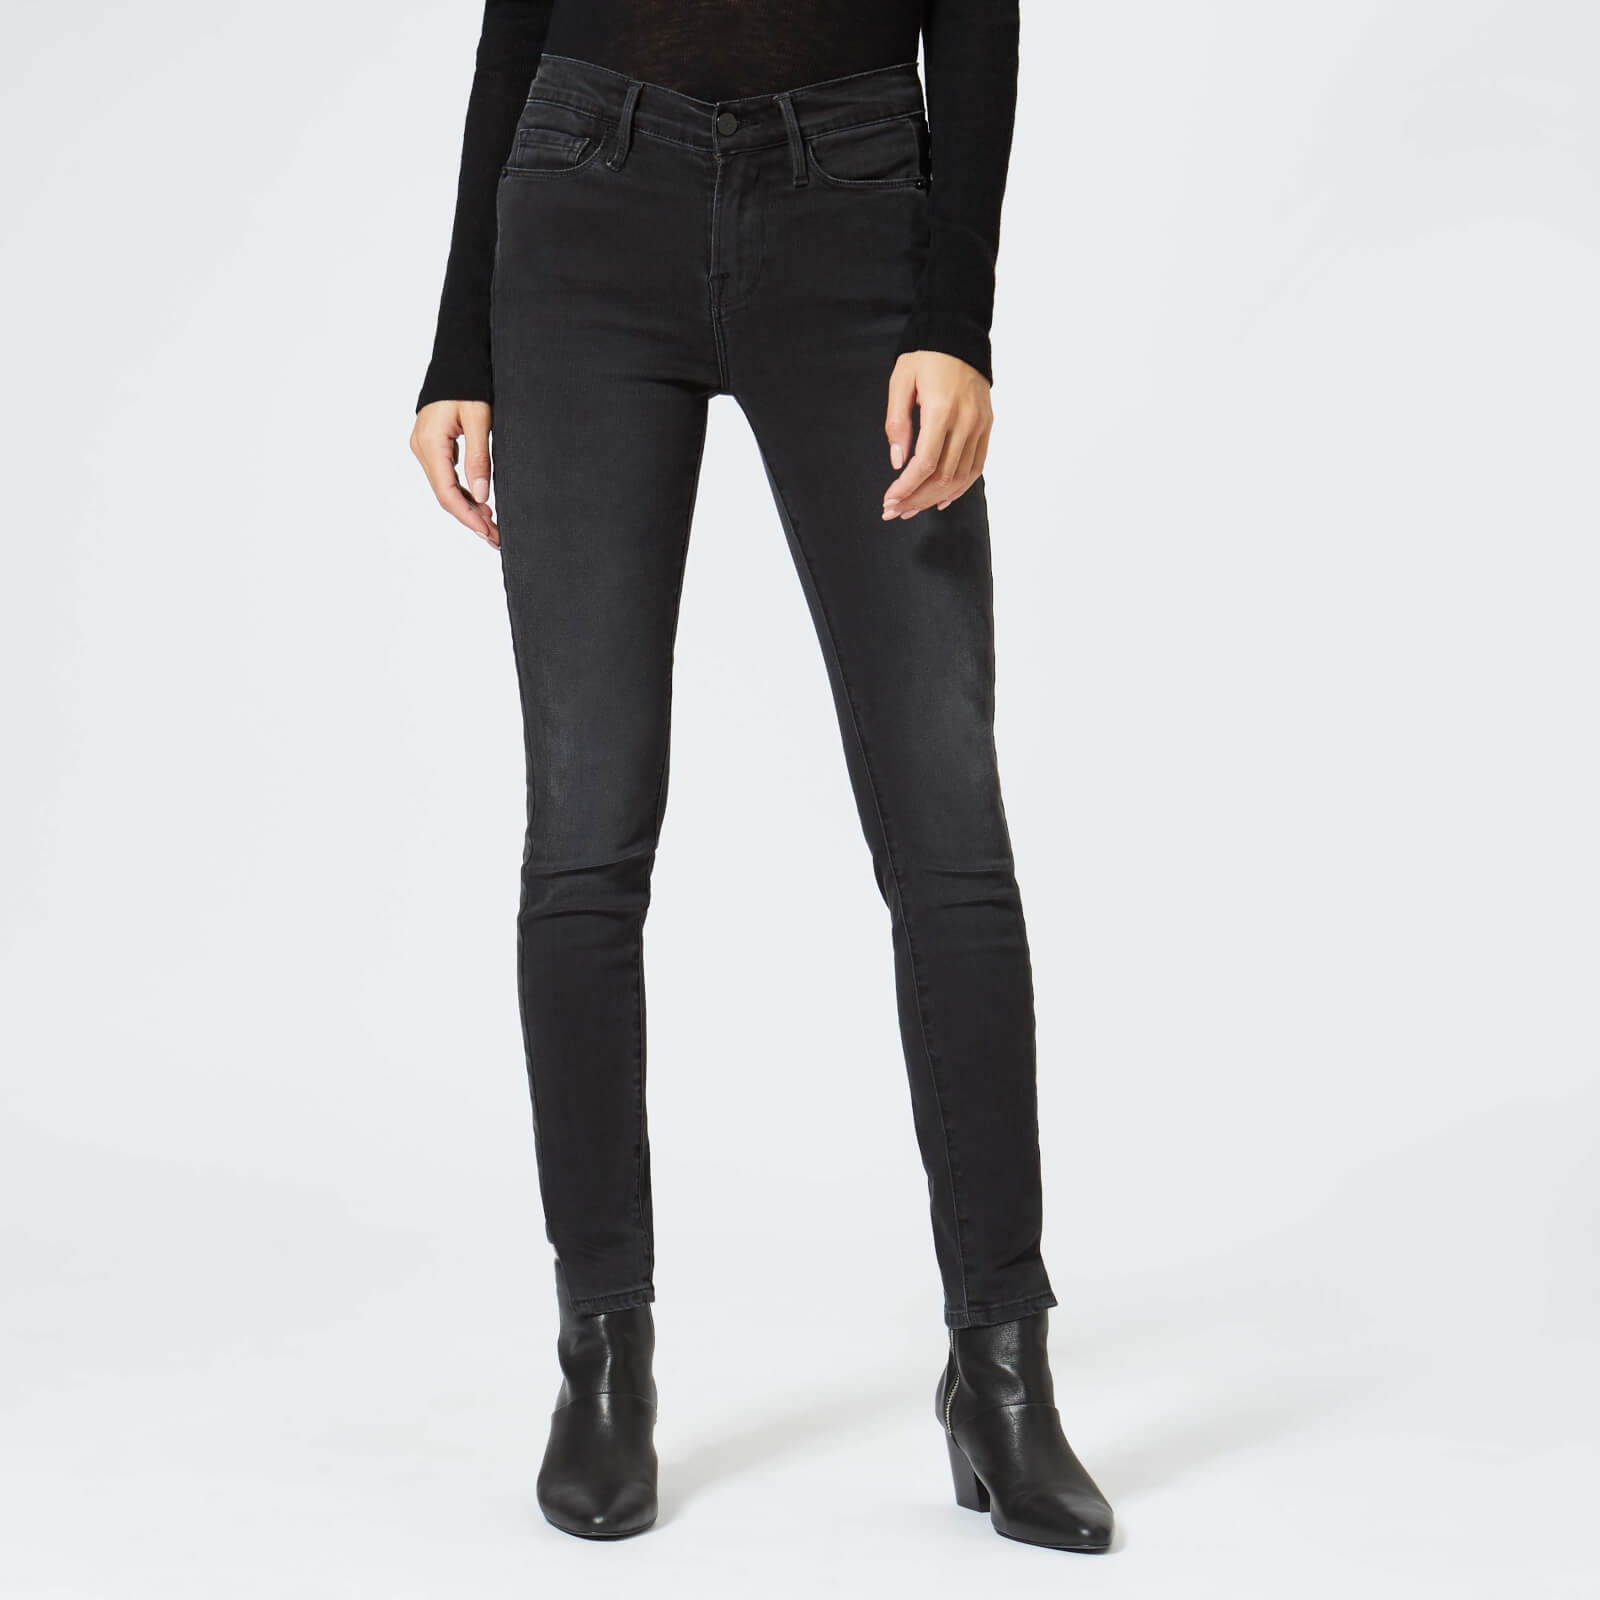 5ab6b103bd04 Frame Women s Le Skinny Coated Jeans - Dunlop Coated Tux - Free UK Delivery  over £50